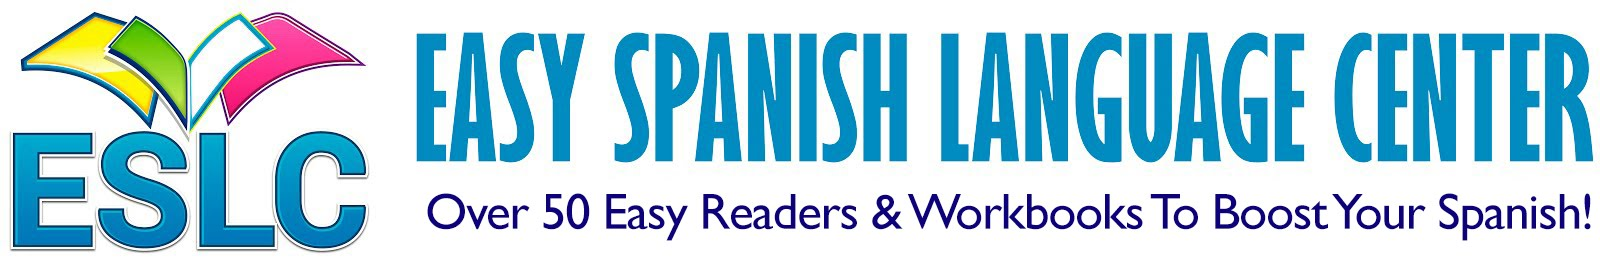 Easy Spanish Language Center